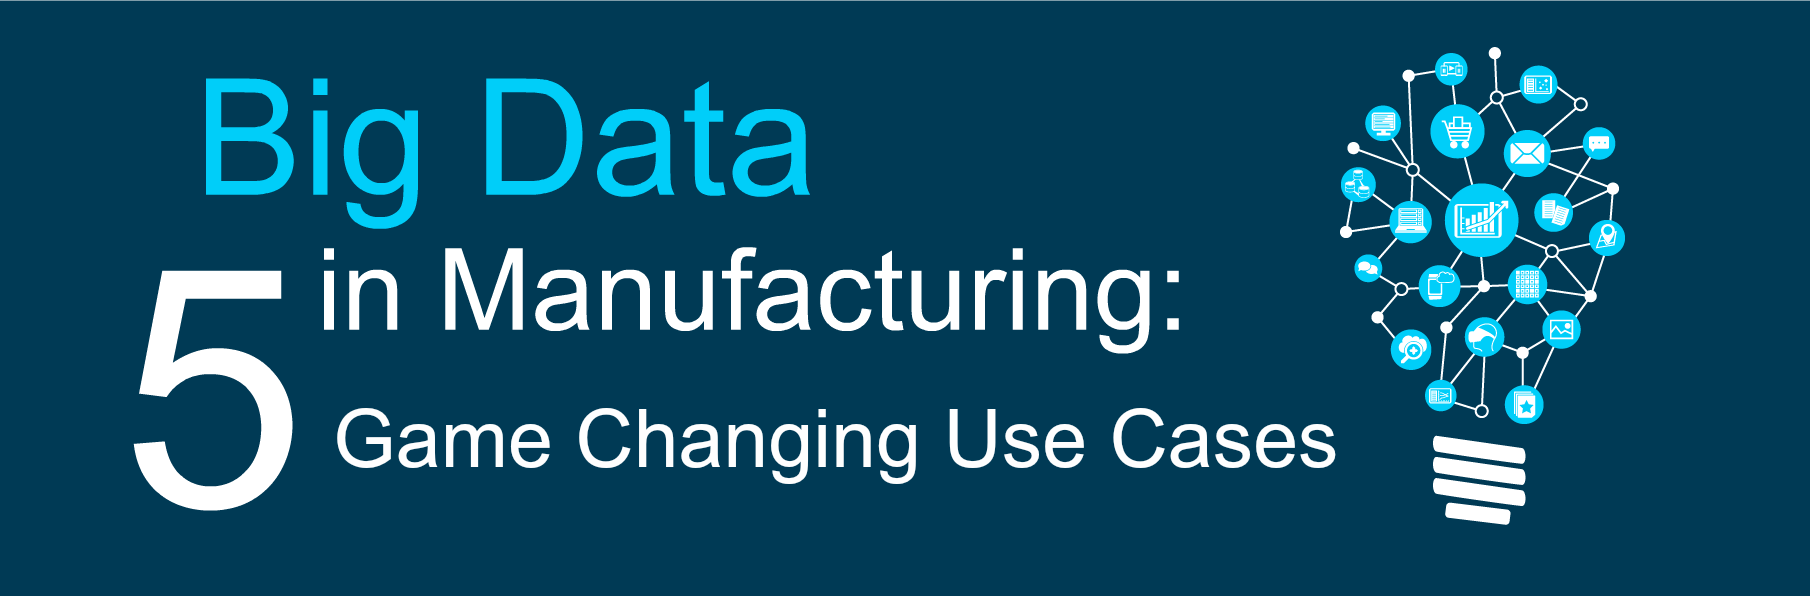 Big Data in Manufacturing Use Cases Concept